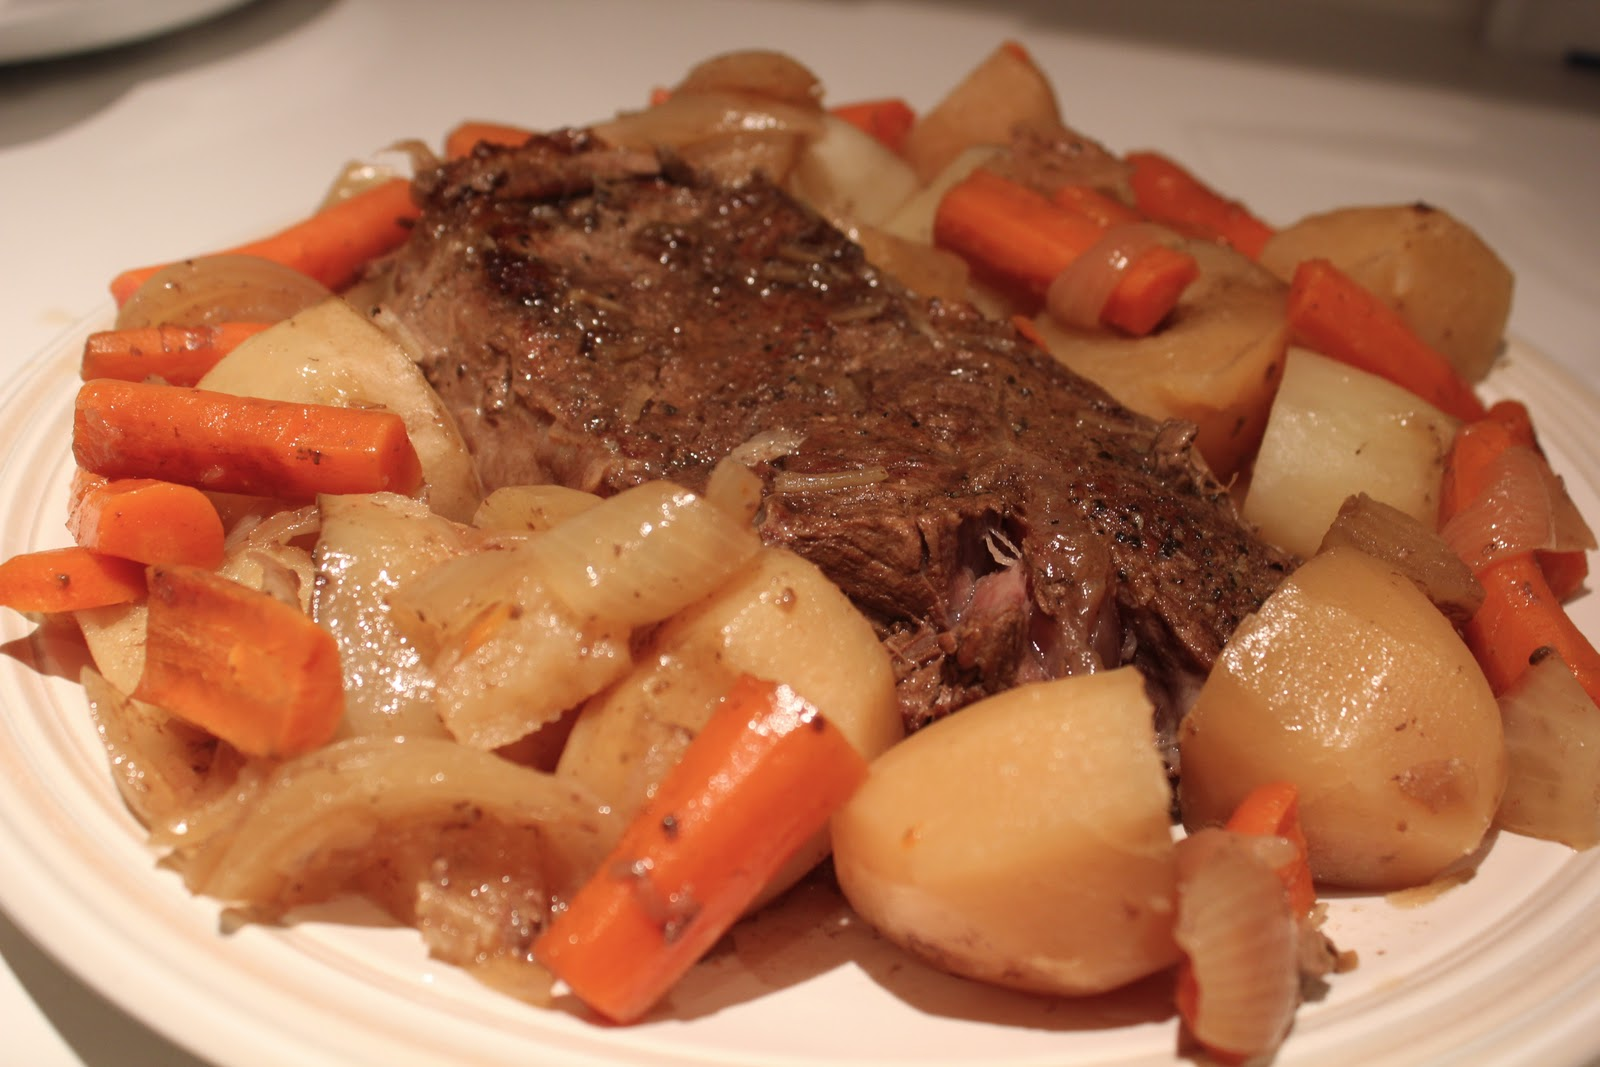 Near to Nothing: Beef Pot Roast with Gravy